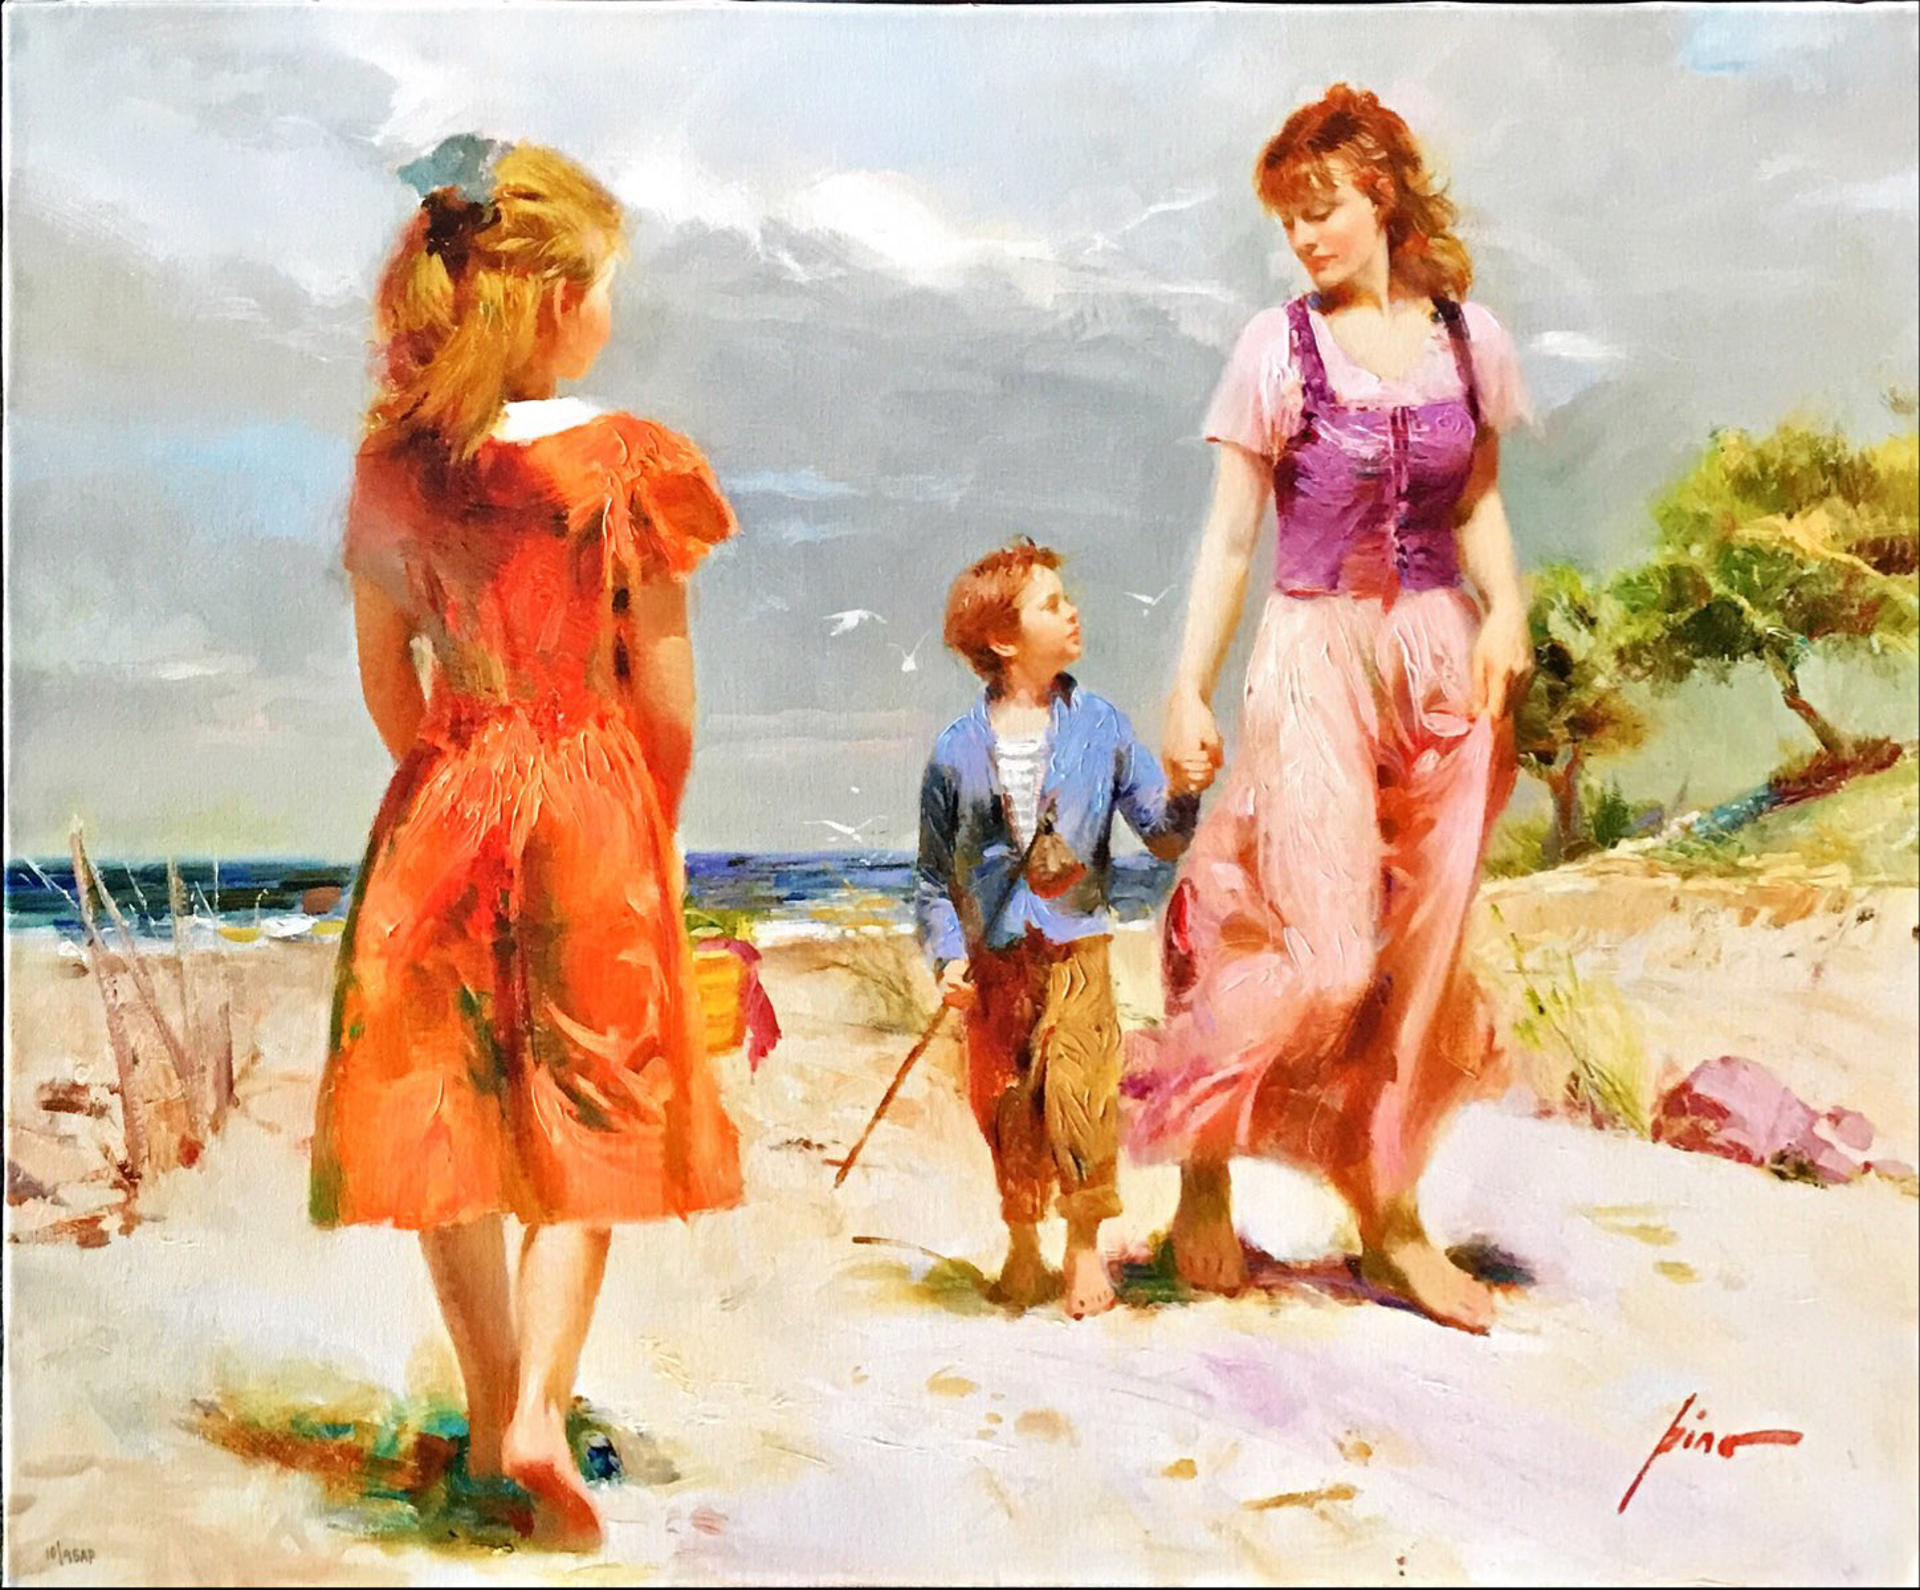 At the Beach by Pino